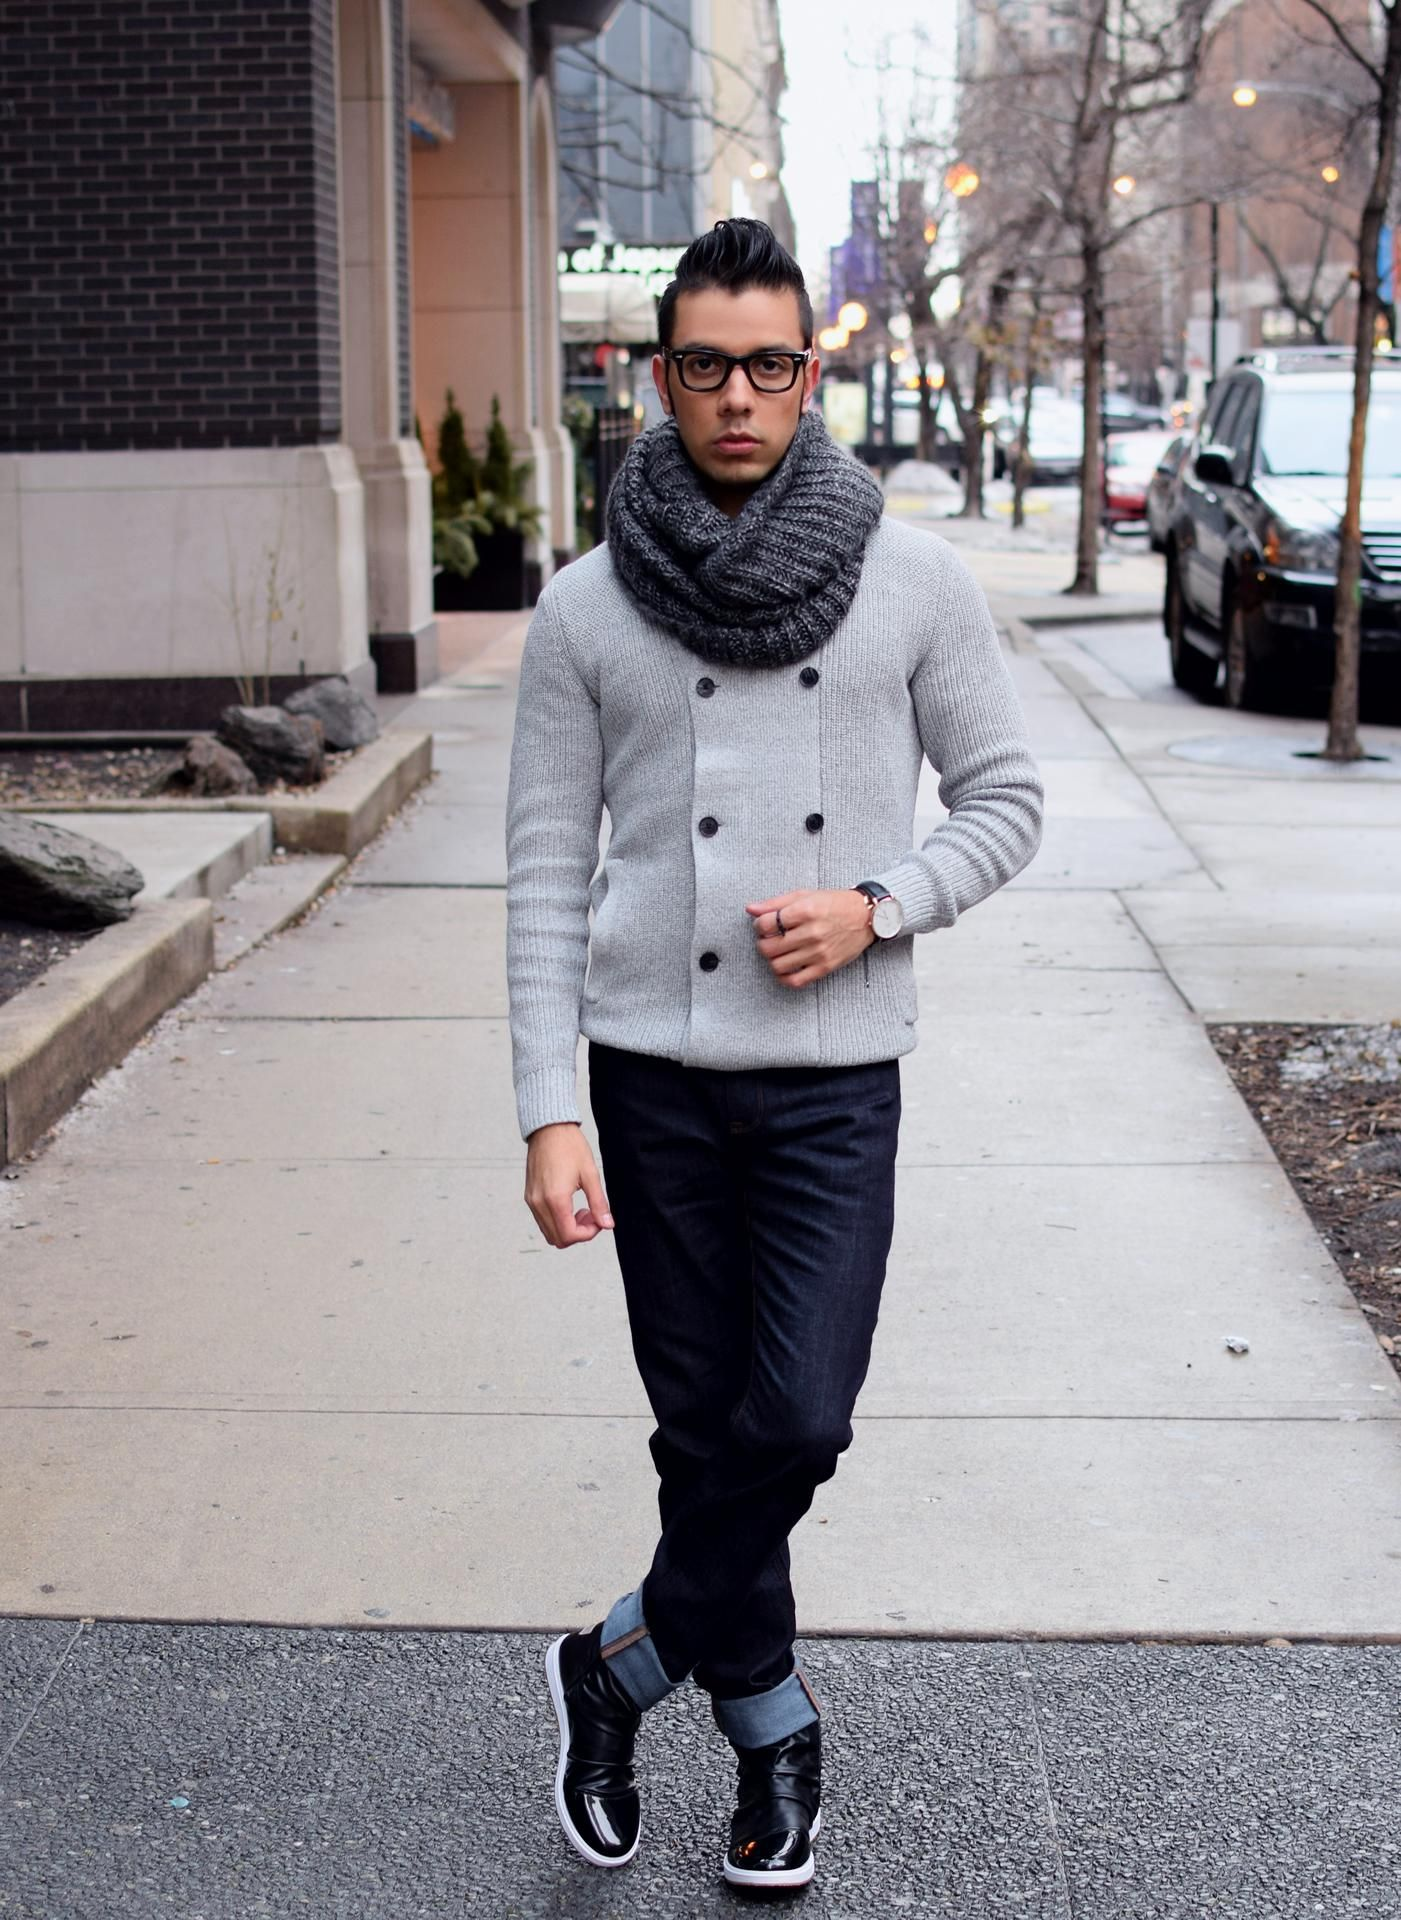 Men's Grey Double Breasted Cardigan, Navy Jeans, Black Leather ...